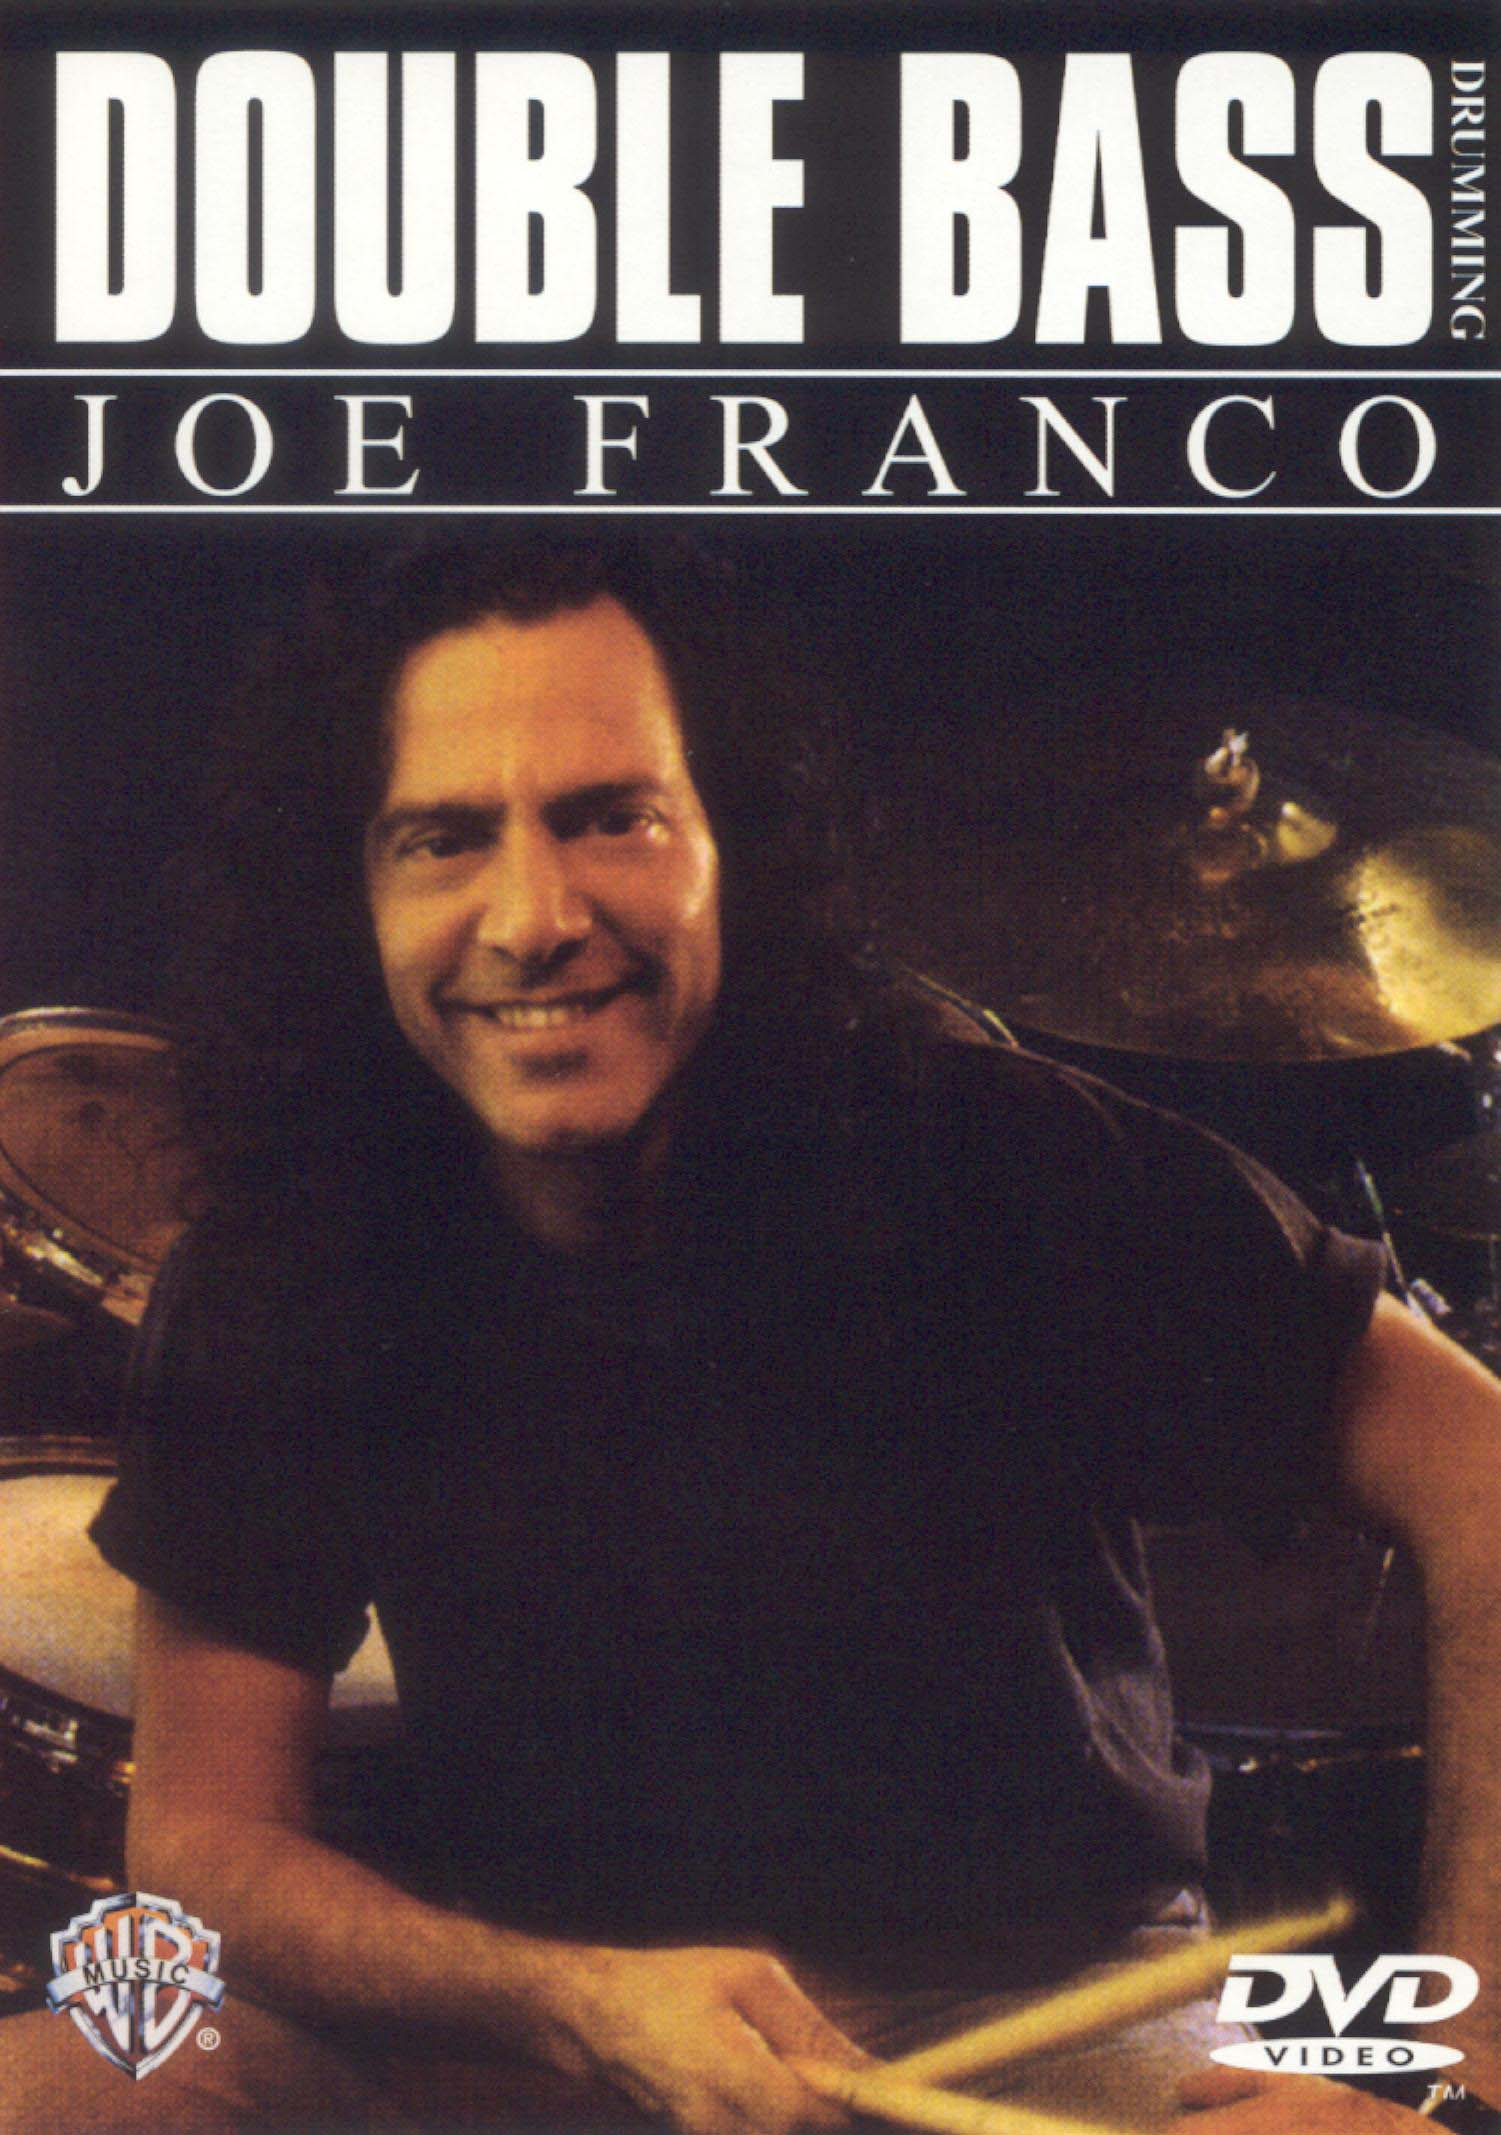 Joe Franco: Double Bass Drumming